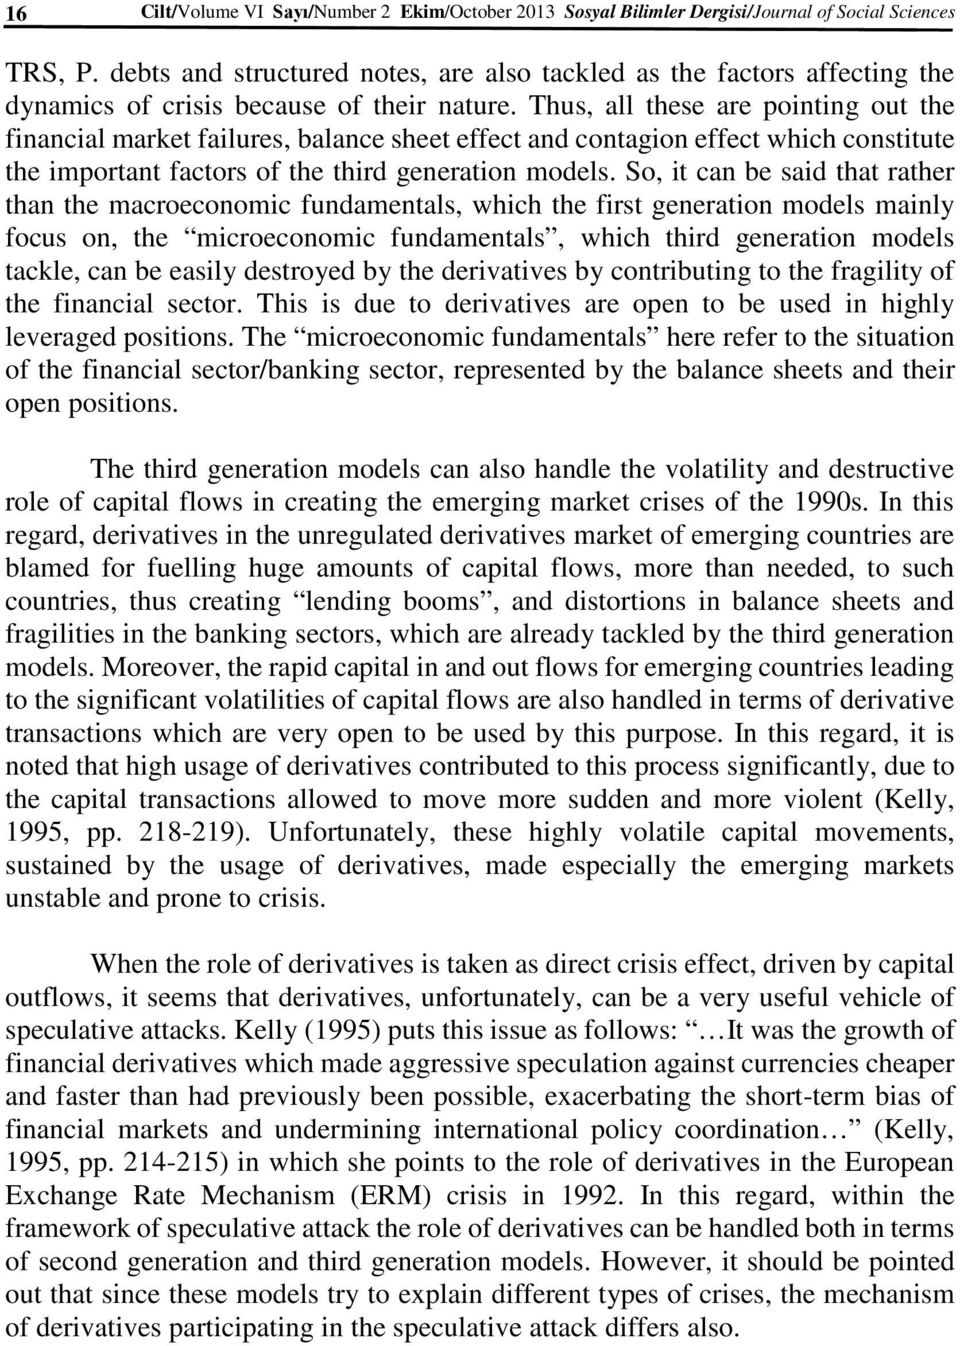 Thus, all these are pointing out the financial market failures, balance sheet effect and contagion effect which constitute the important factors of the third generation models.